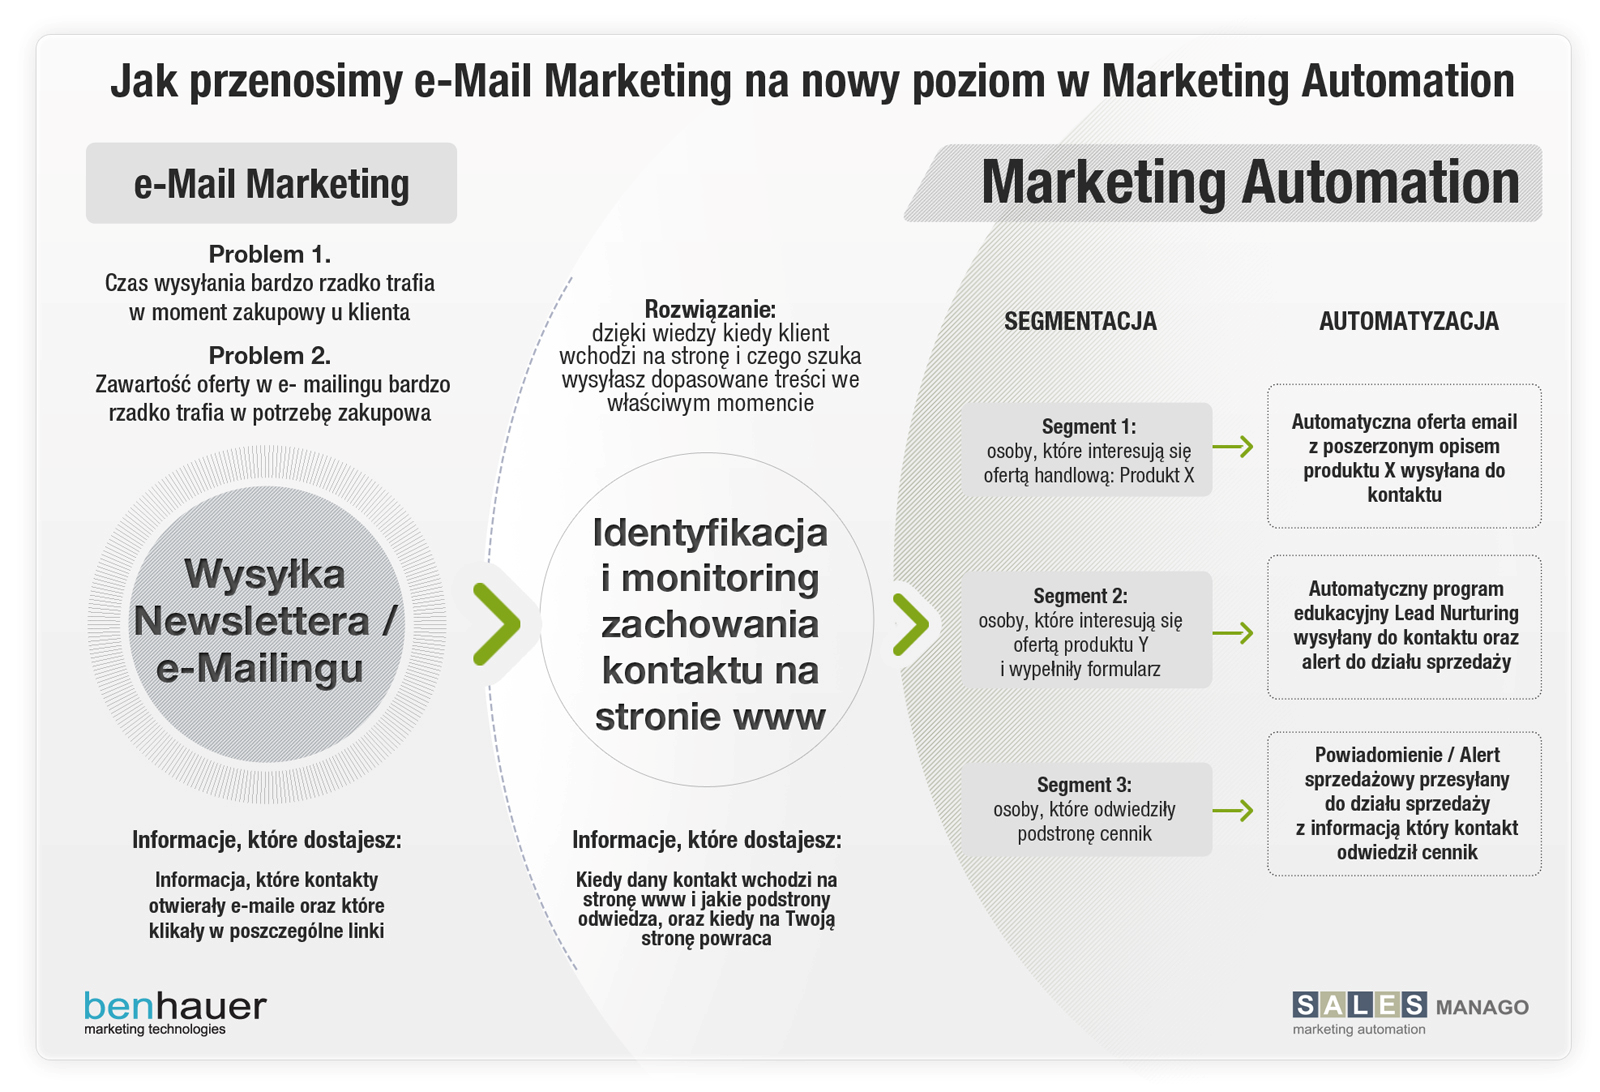 Jak przenosimy e-Mail Marketing na nowy poziom w Marketing Automation